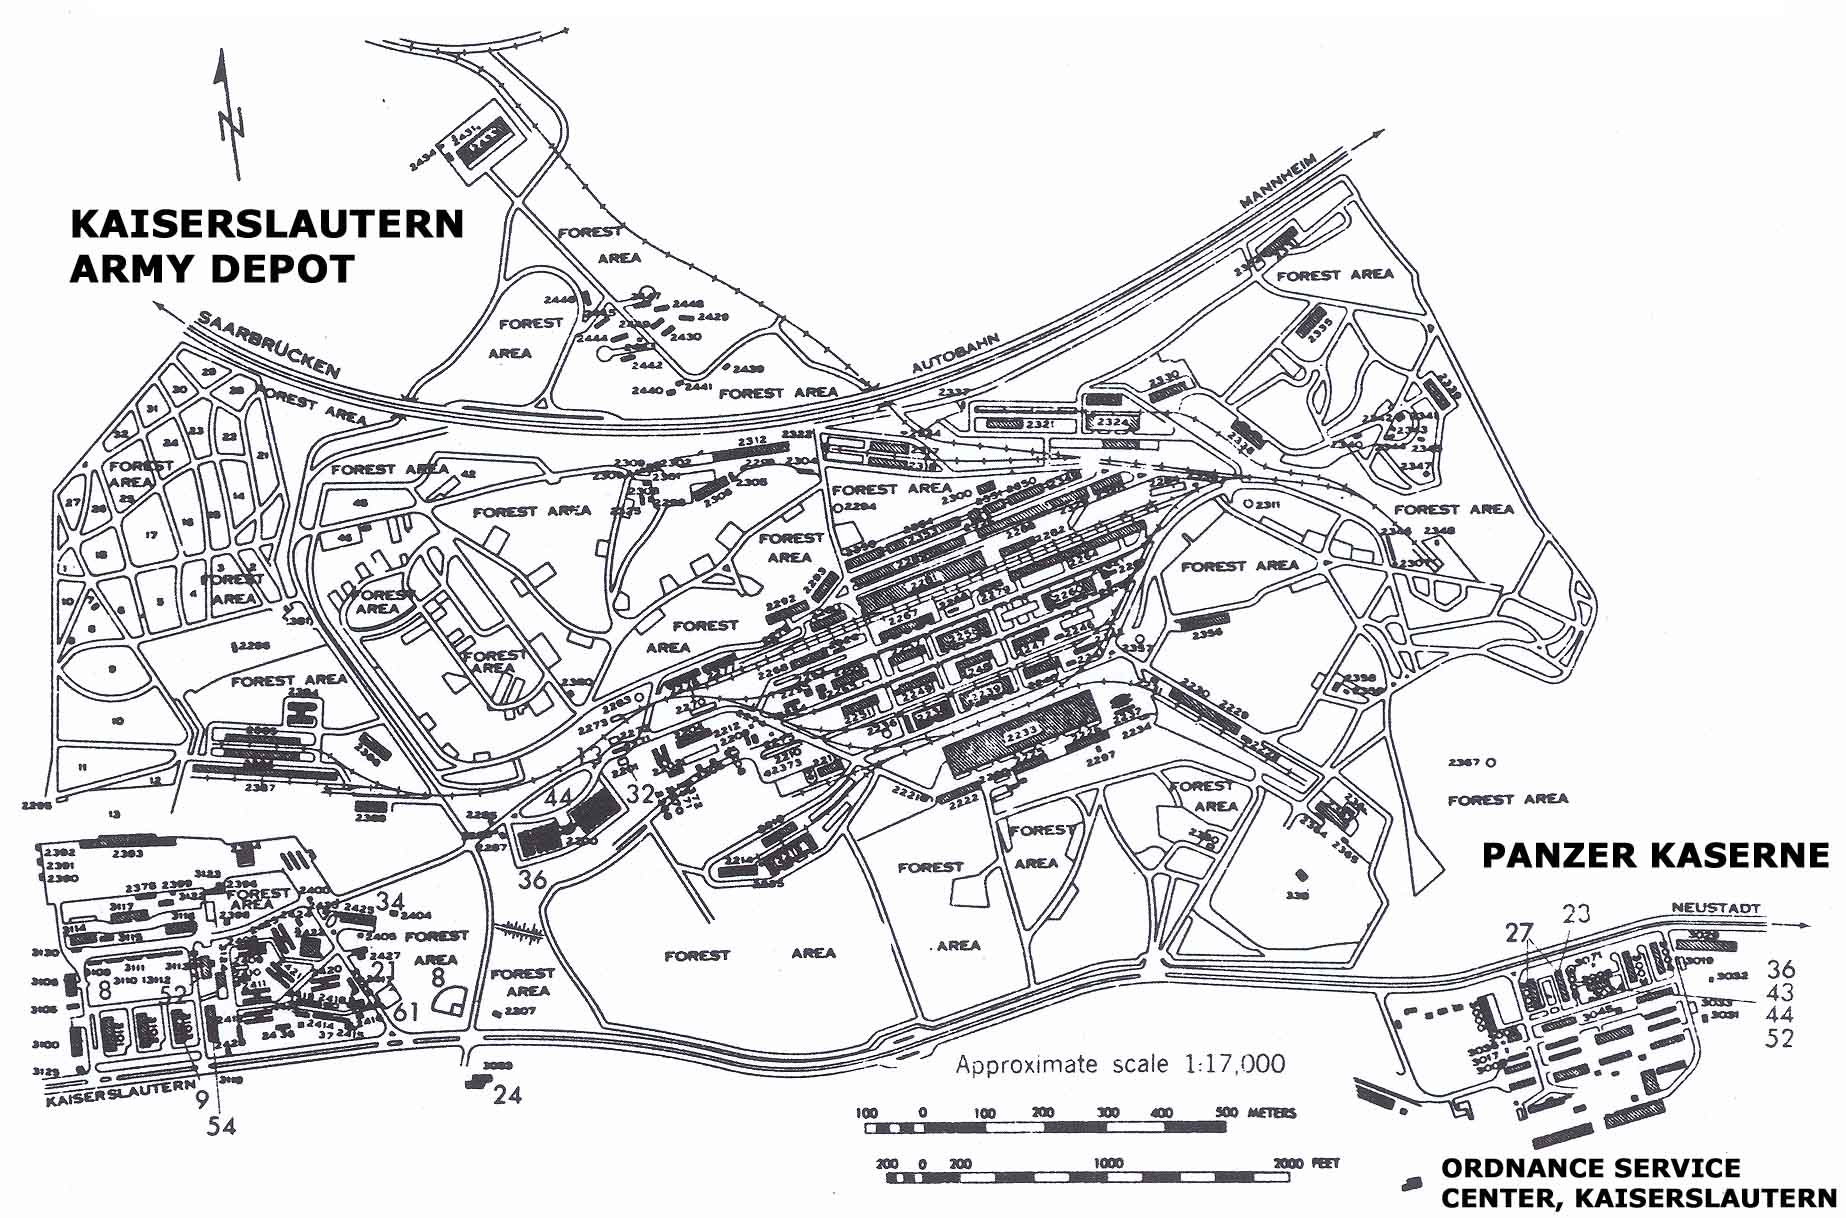 USAREUR Installation Maps - KAD, Panzer and Ord Svc Cen